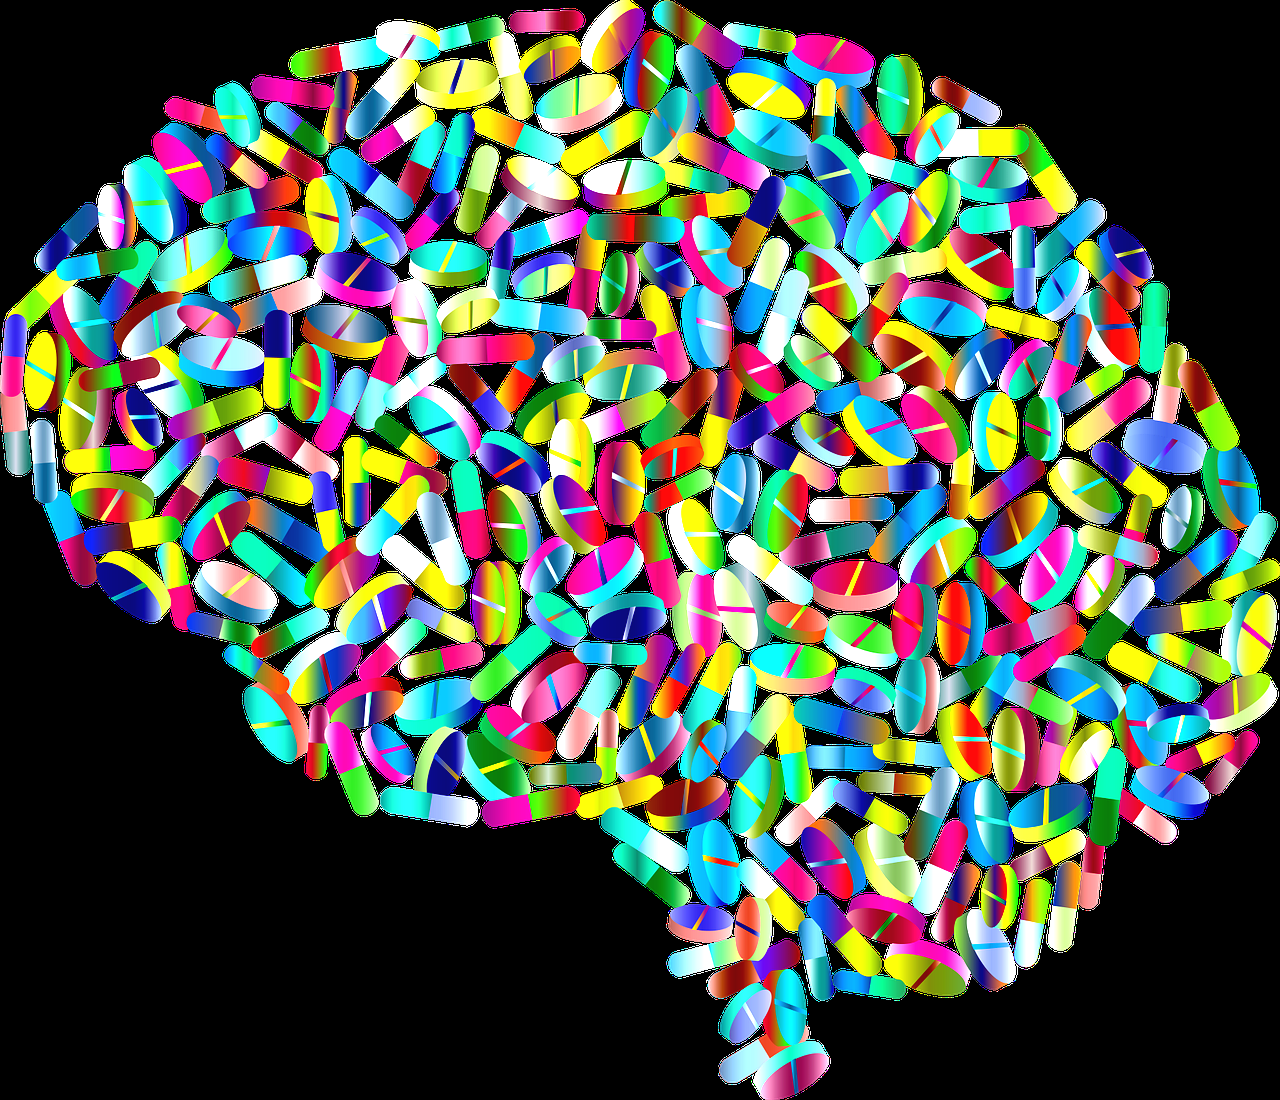 Can we teach old drugs new tricks to prevent dementia?